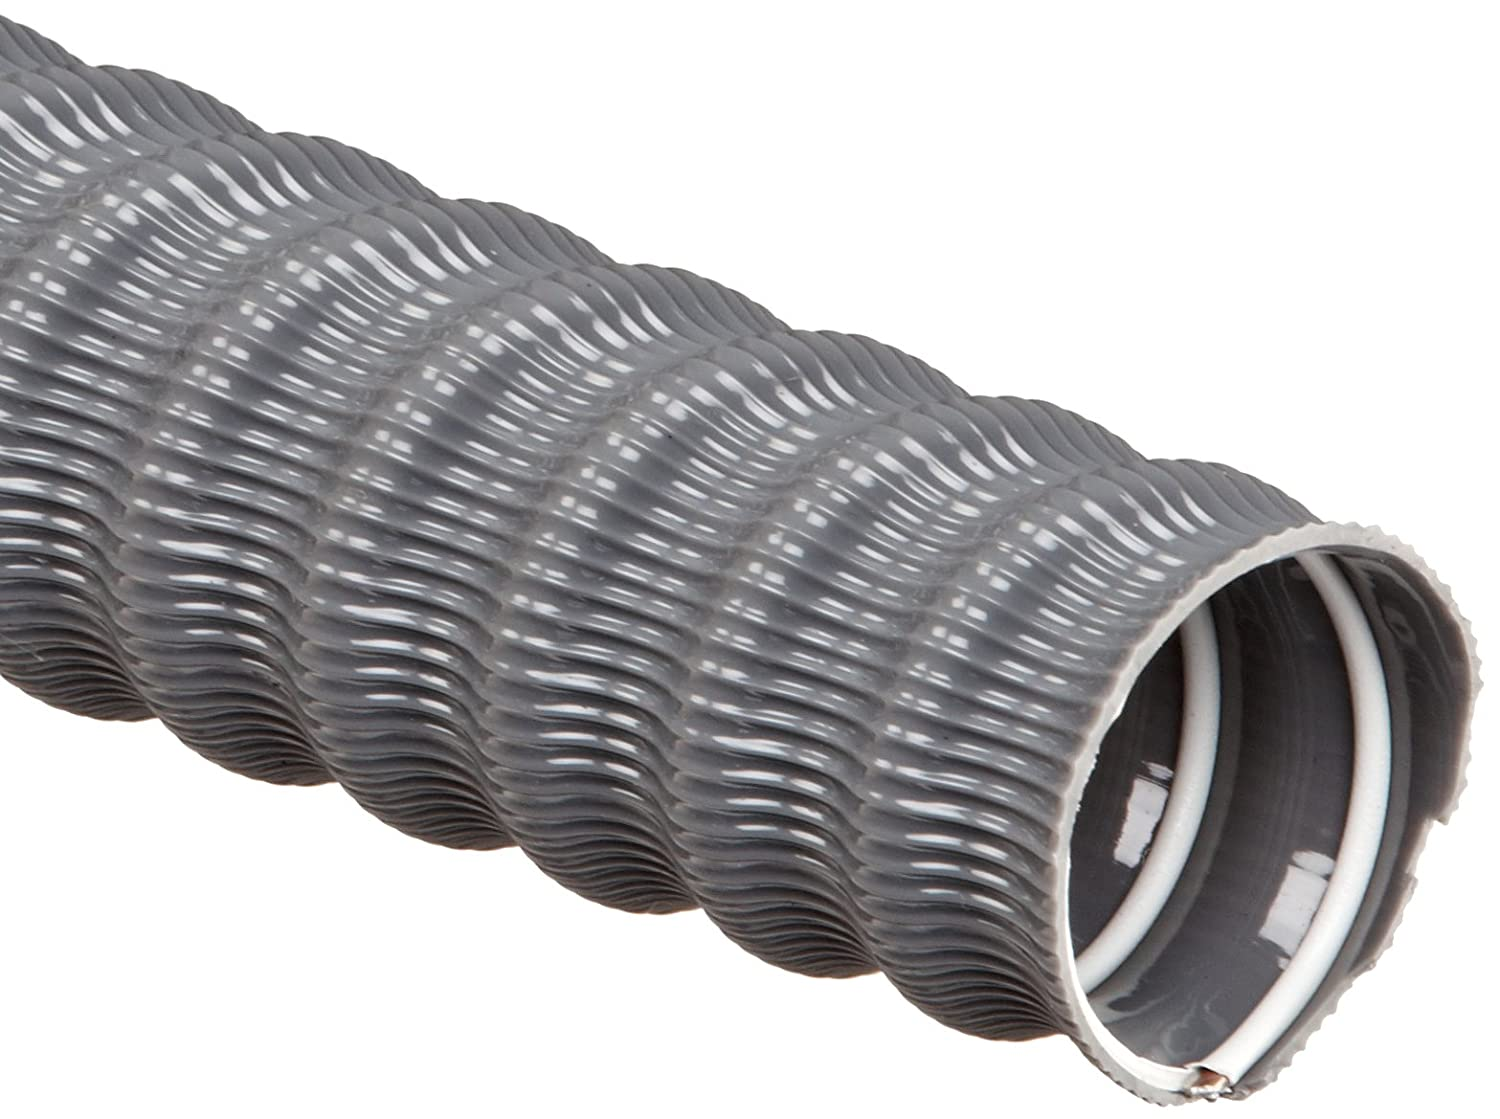 Dayflex MG-V PVC Duct Hose, Gray, For Use With Air, Fume, Dust, Chips, Shavings FLECW